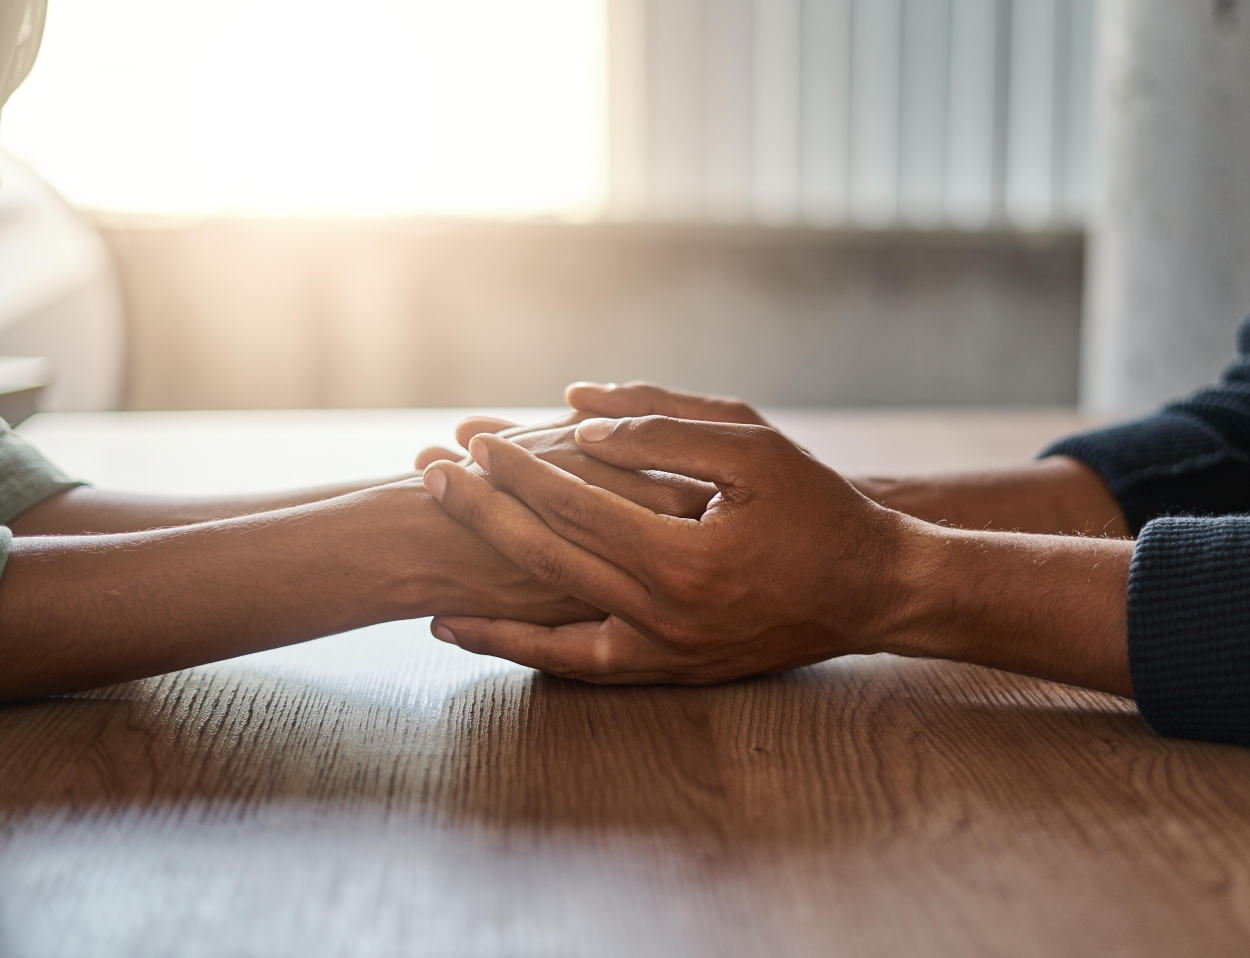 The future of the economy depends on compassion